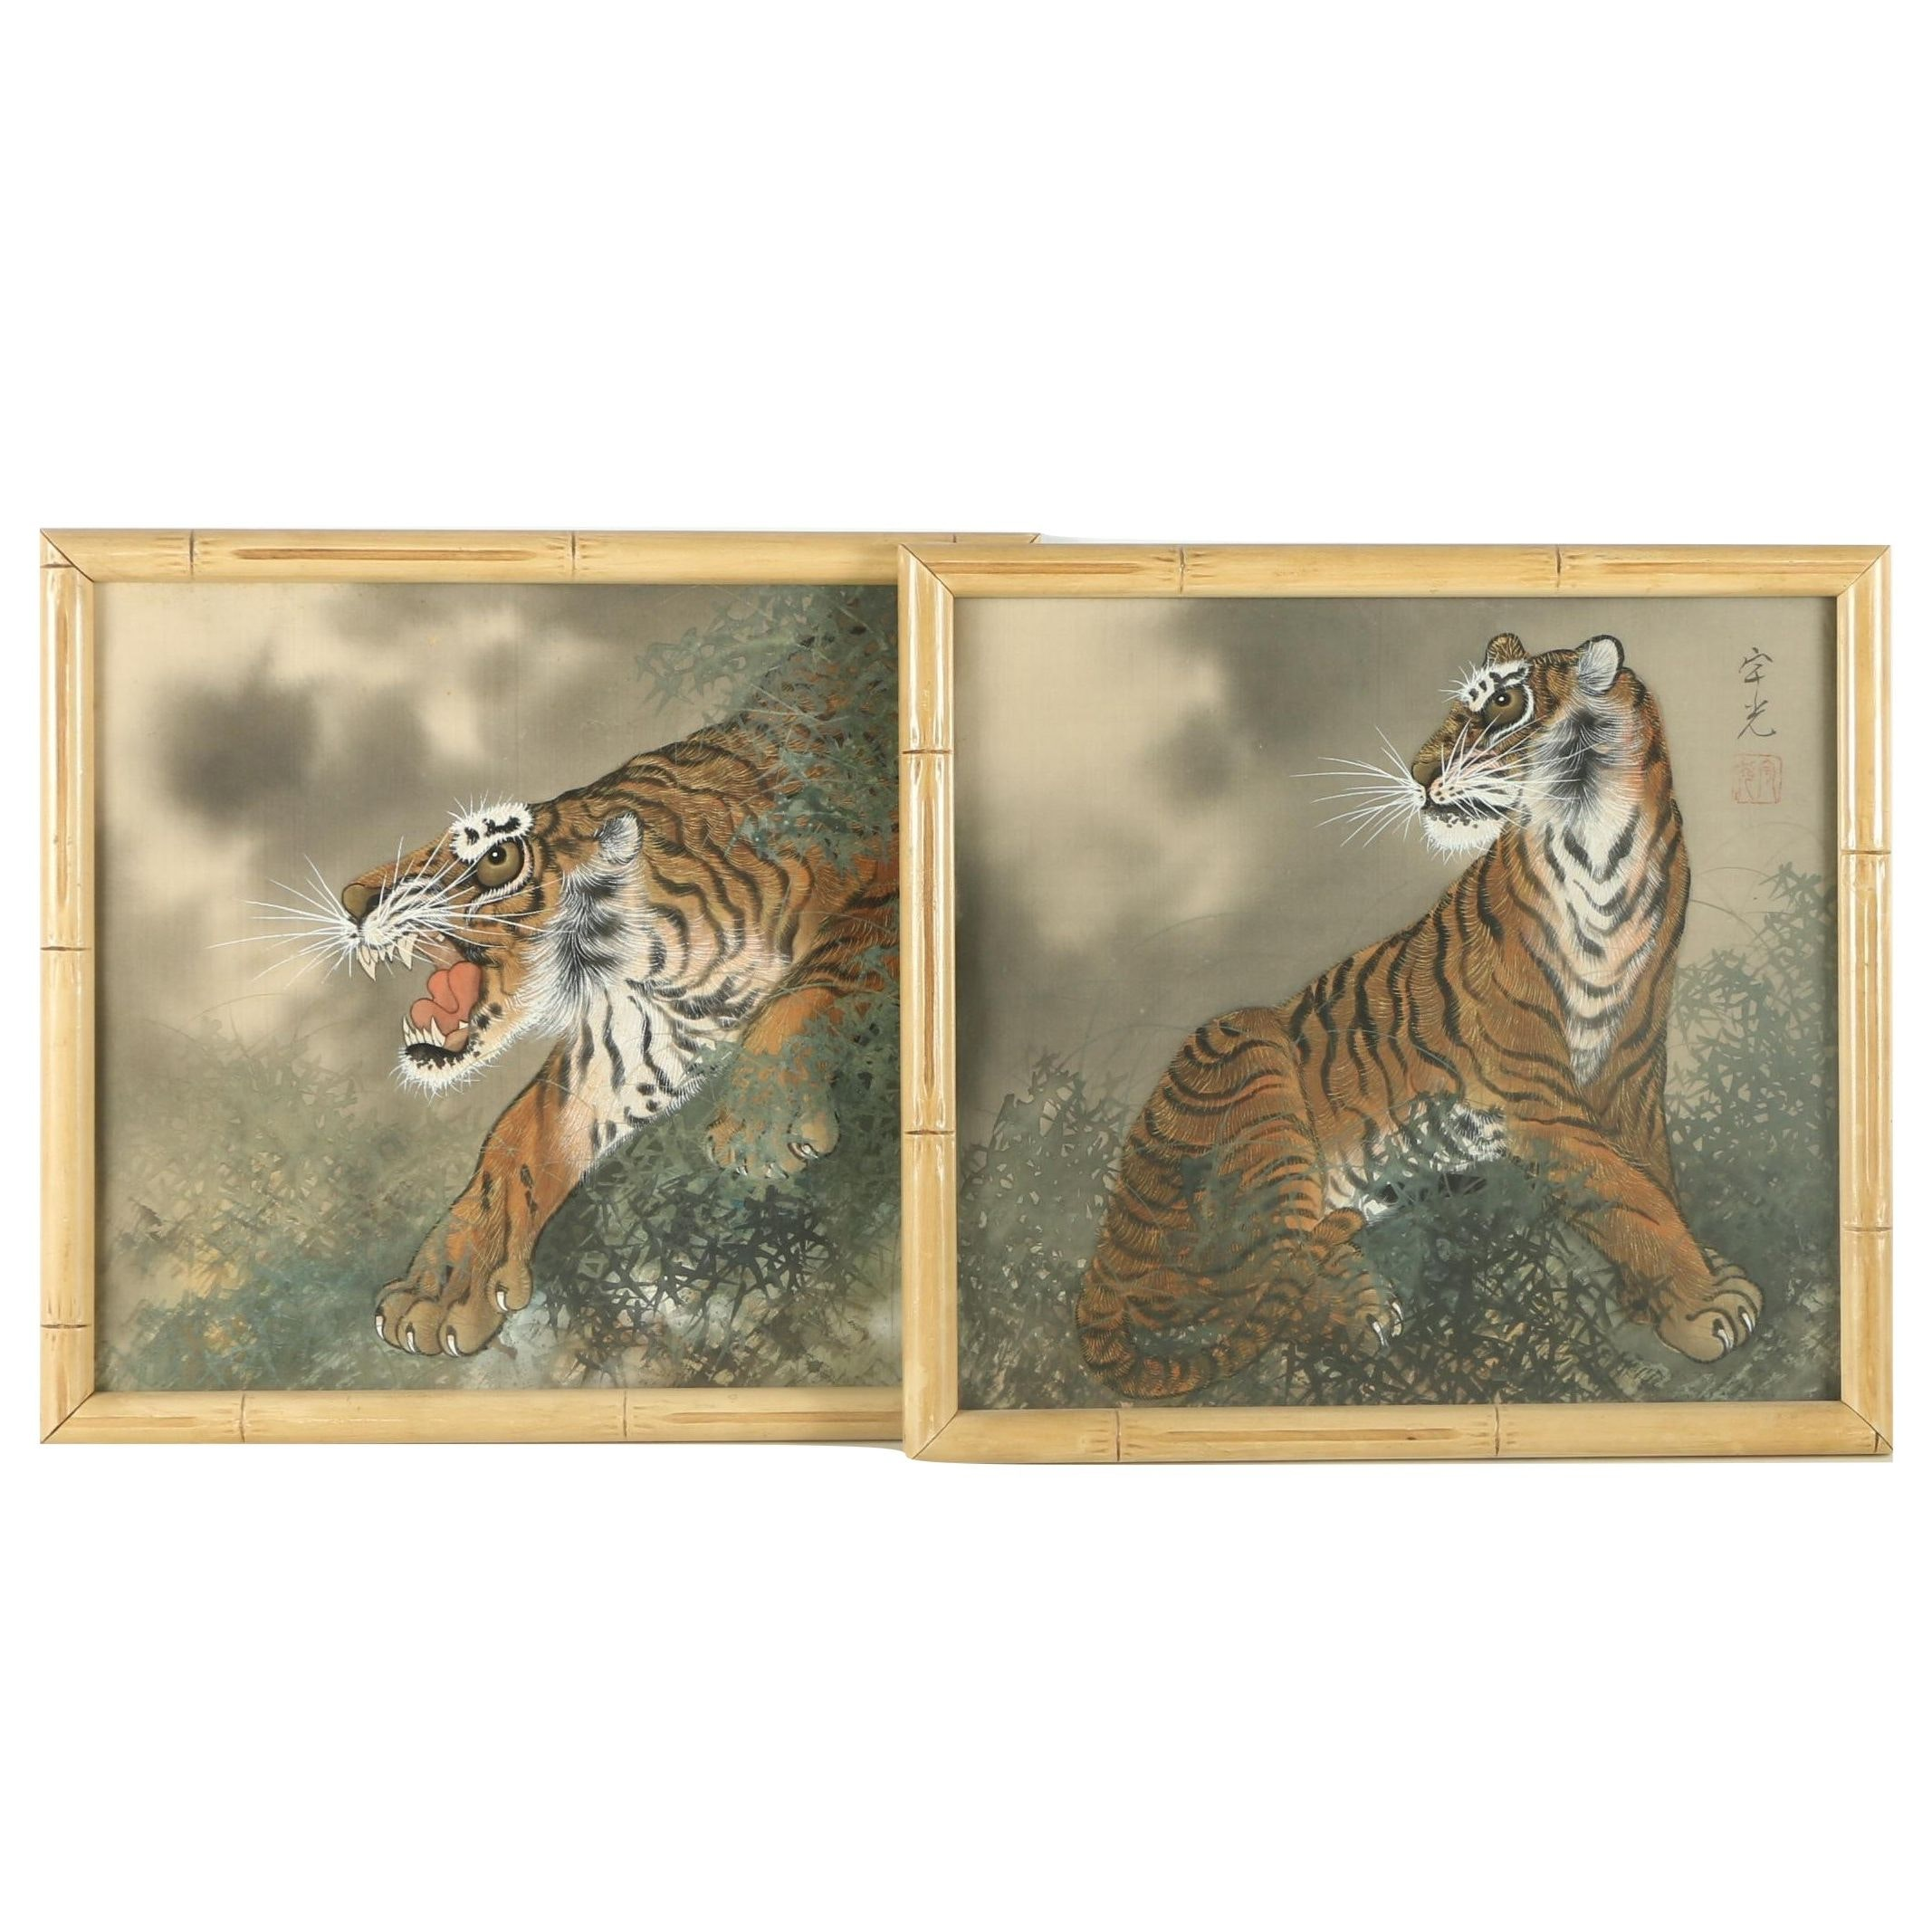 East Asian Style Ink and Watercolor Paintings on Silk of Tigers